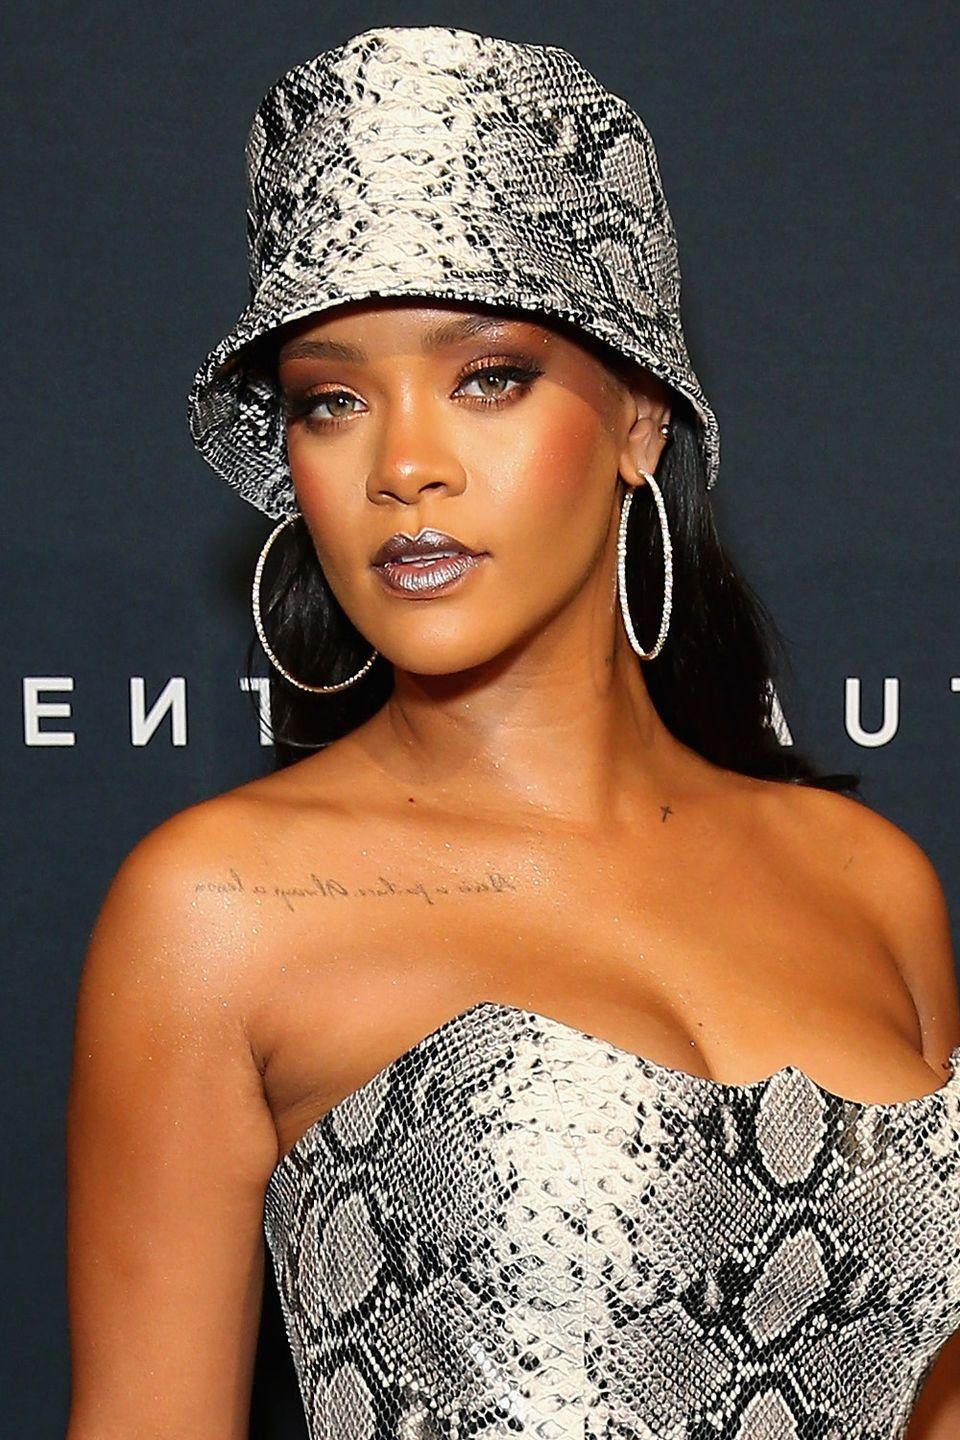 <p>Rihanna brought back bucket hats with this cool snake skin design.</p>